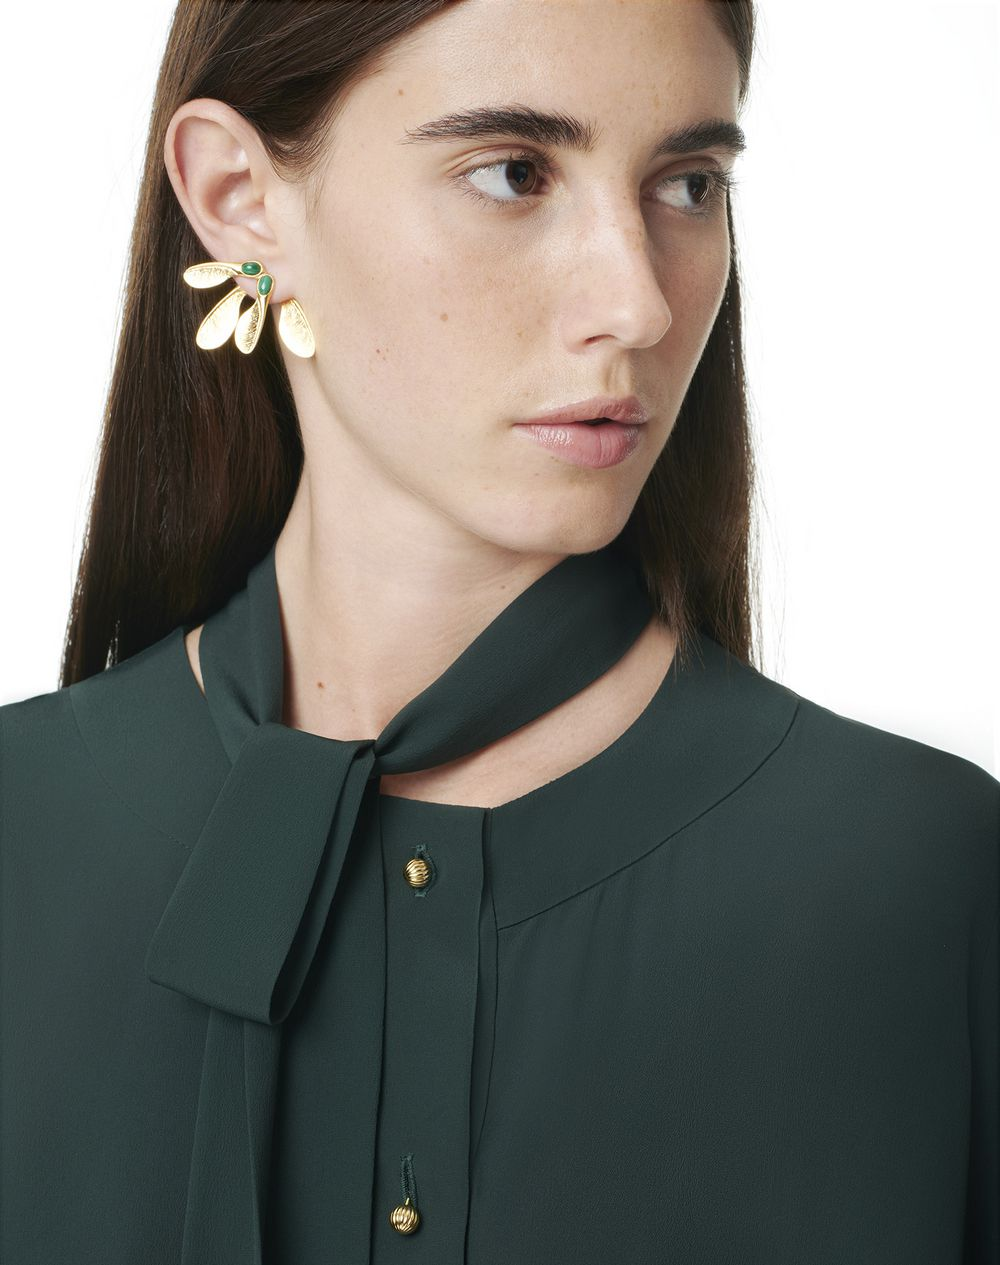 AUTUMN DAY EARRINGS WITH MALACHITE - Lanvin